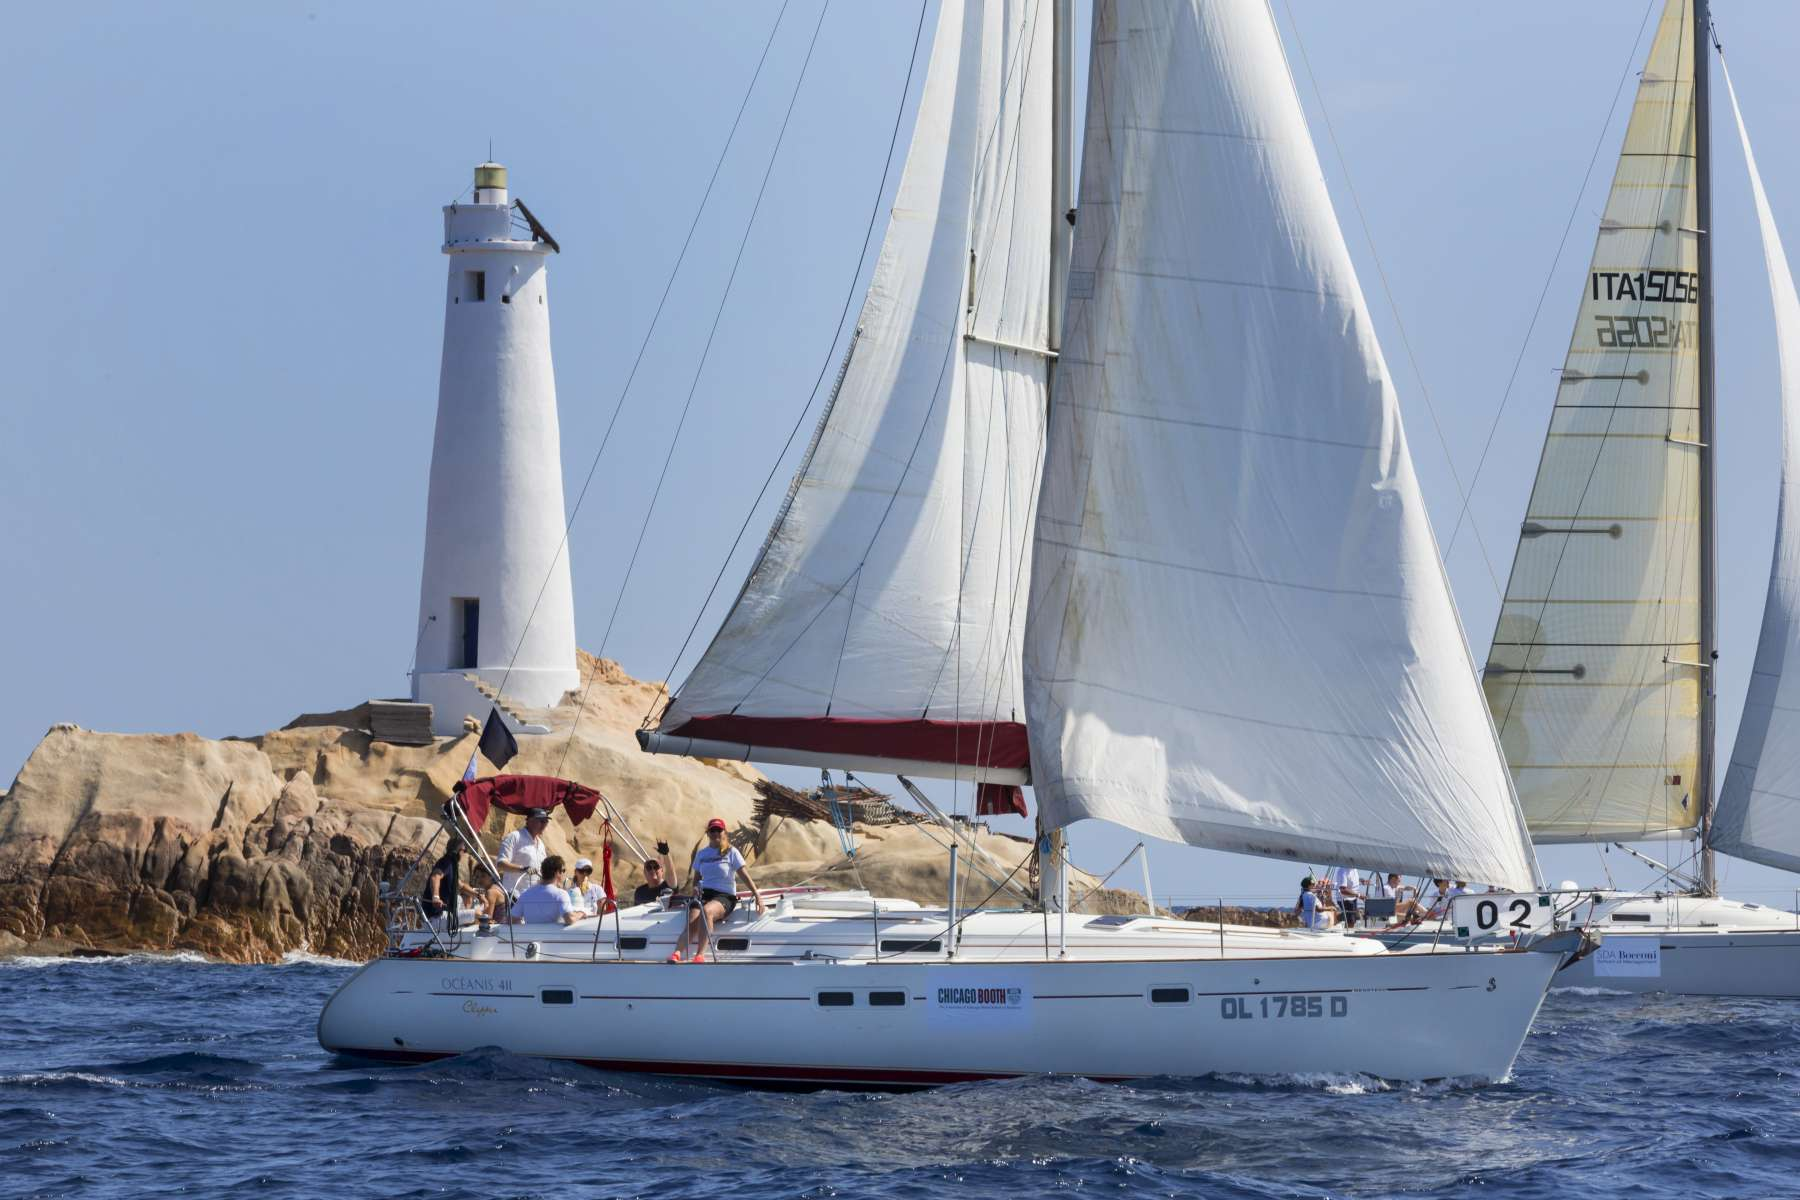 One Ocean MBA's Conference and Regatta - Porto Cervo 2019 - 5